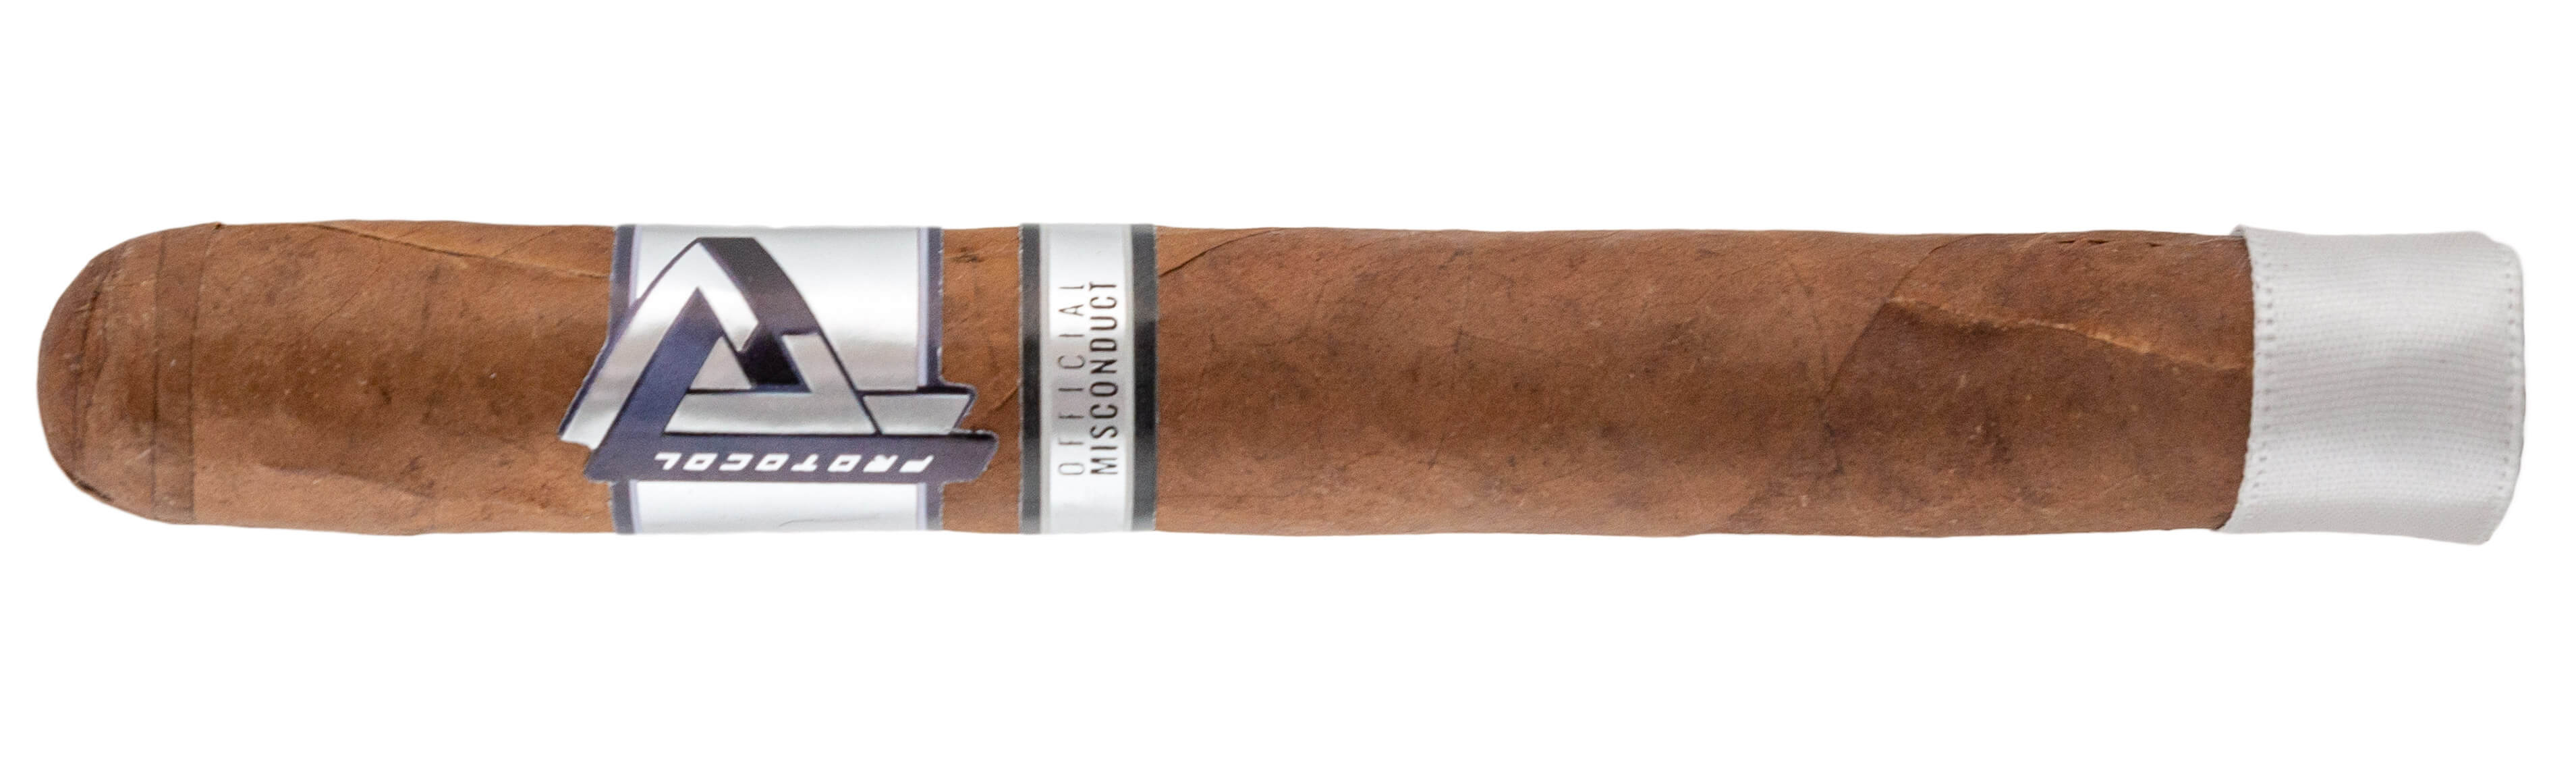 Blind Cigar Review: Cubariqueño | Protocol Official Misconduct Toro